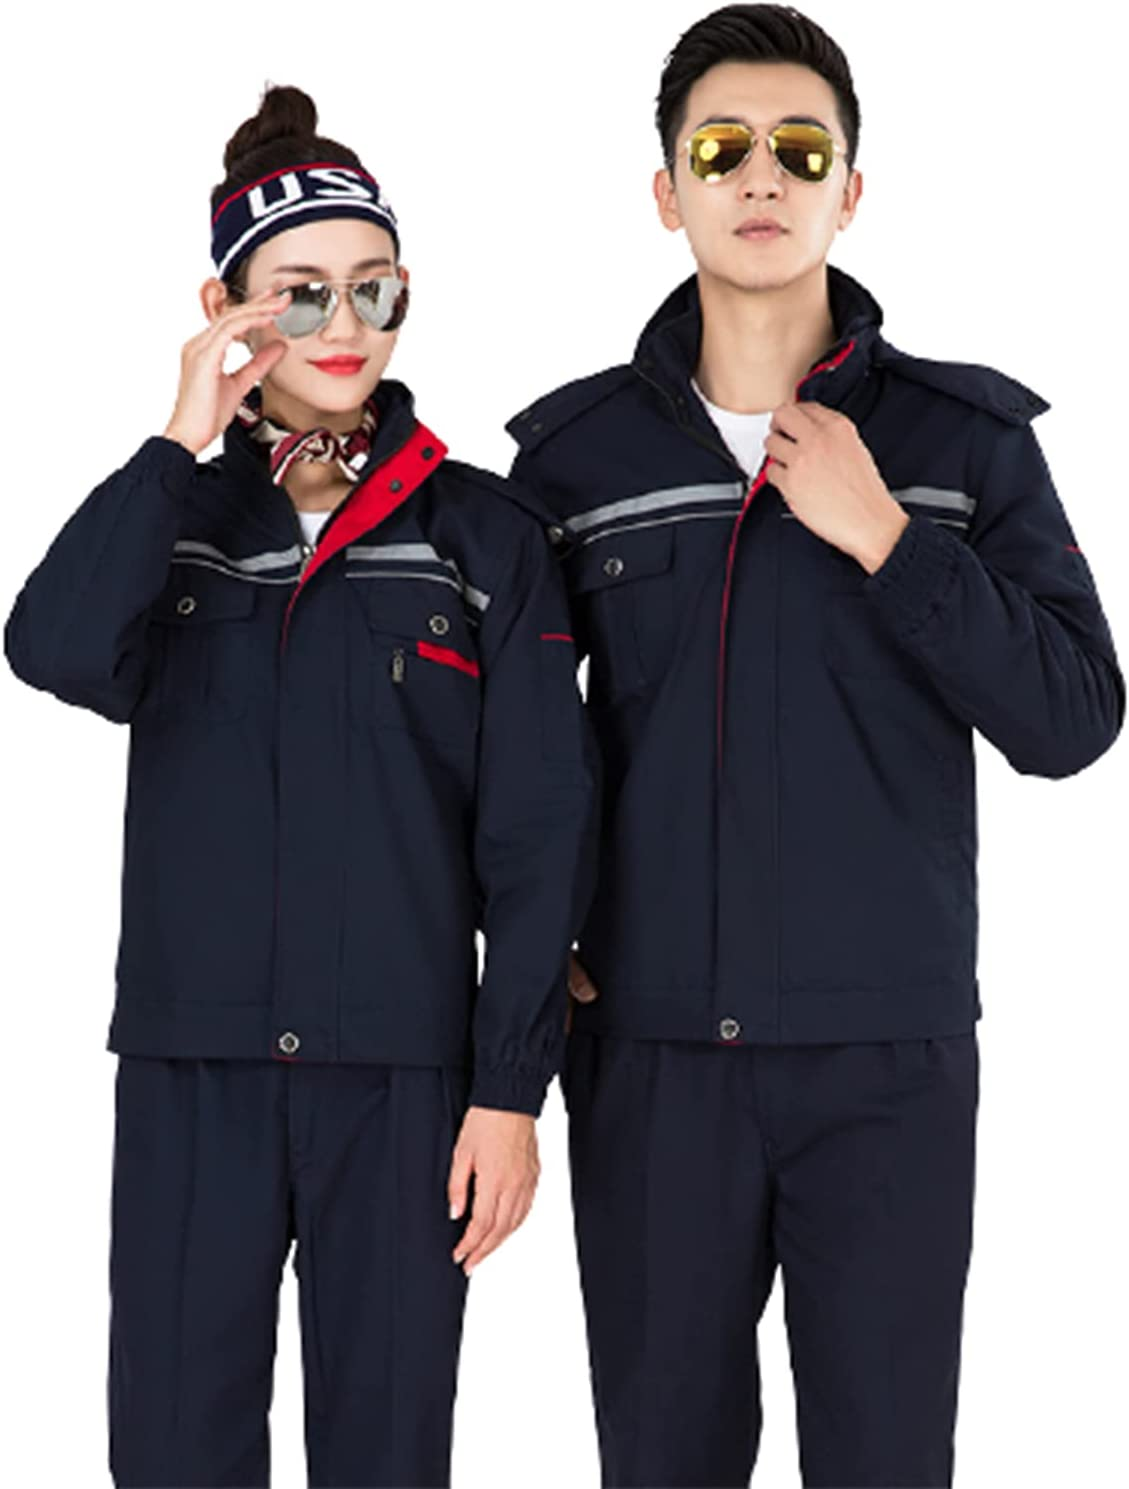 Winter Work Jacket with Warm Lining Work Clothing in Cotton for Garden Cleaning Job Work Uniform